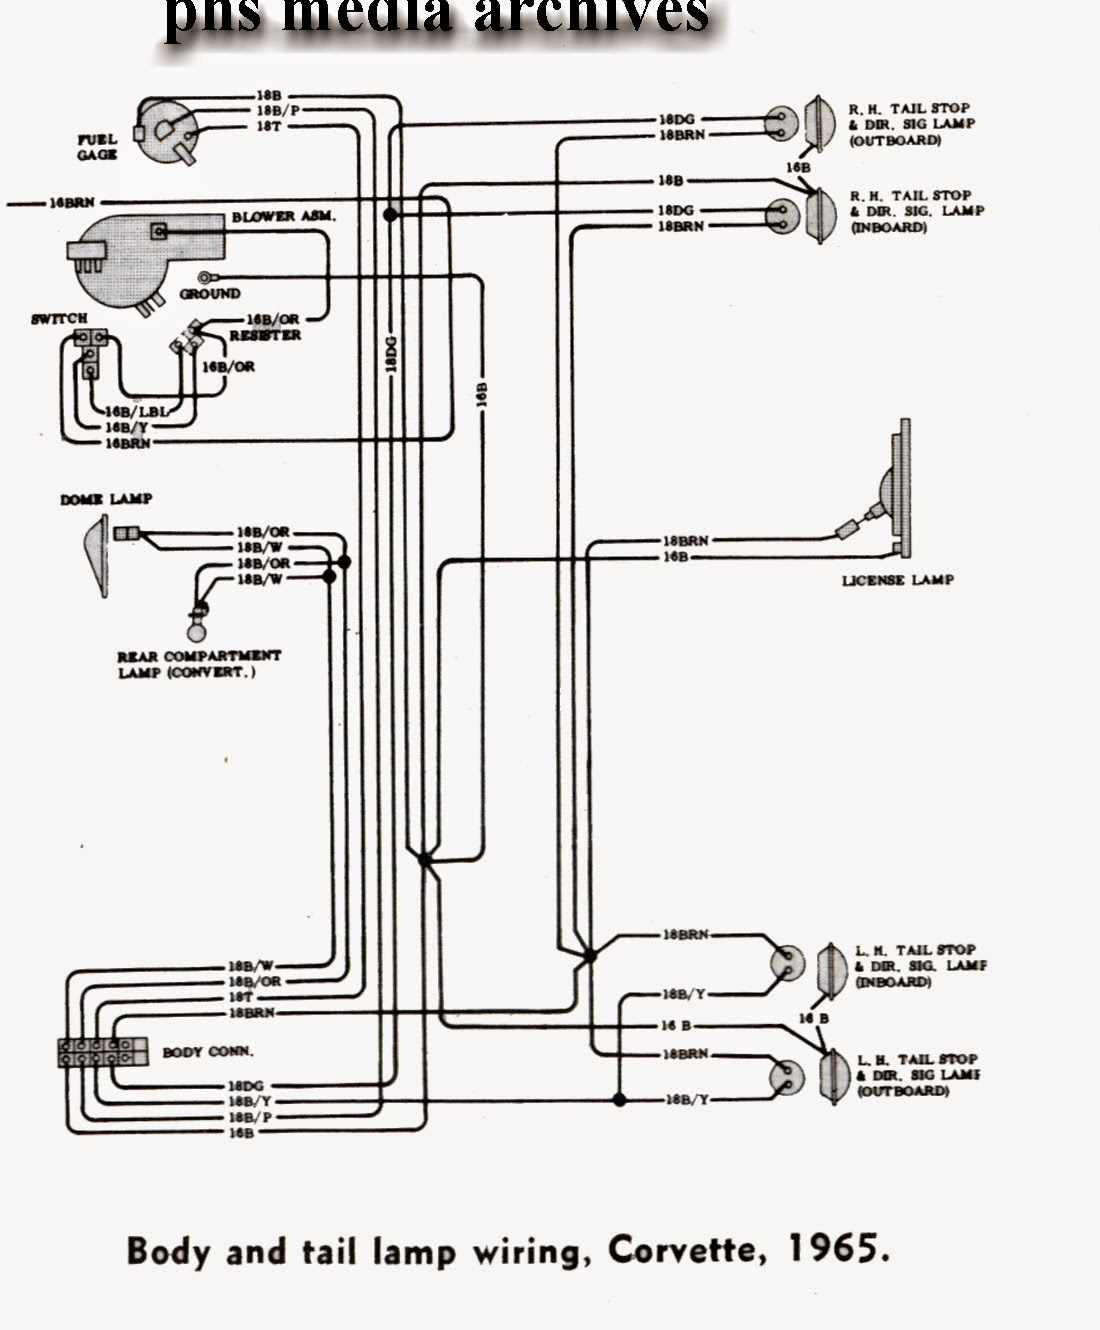 vette%2Btail%2Blmp tech series 1965 chevrolet corvette wiring diagrams, engine, fuse 65 corvette wiring diagram at soozxer.org